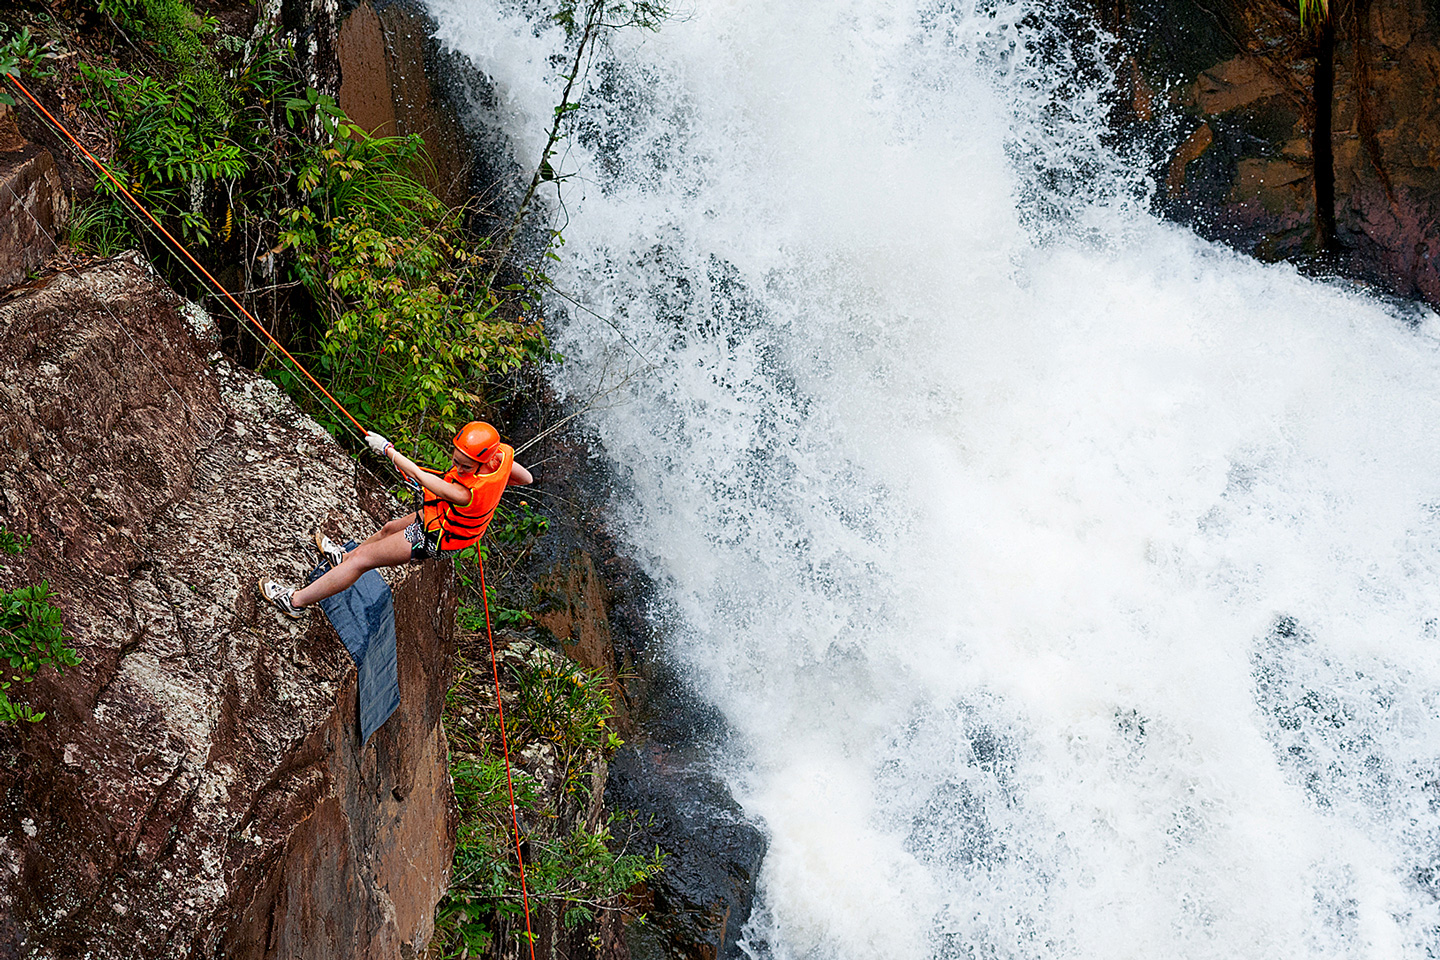 A Crazy Canyoning Adventure in Dalat, Vietnam